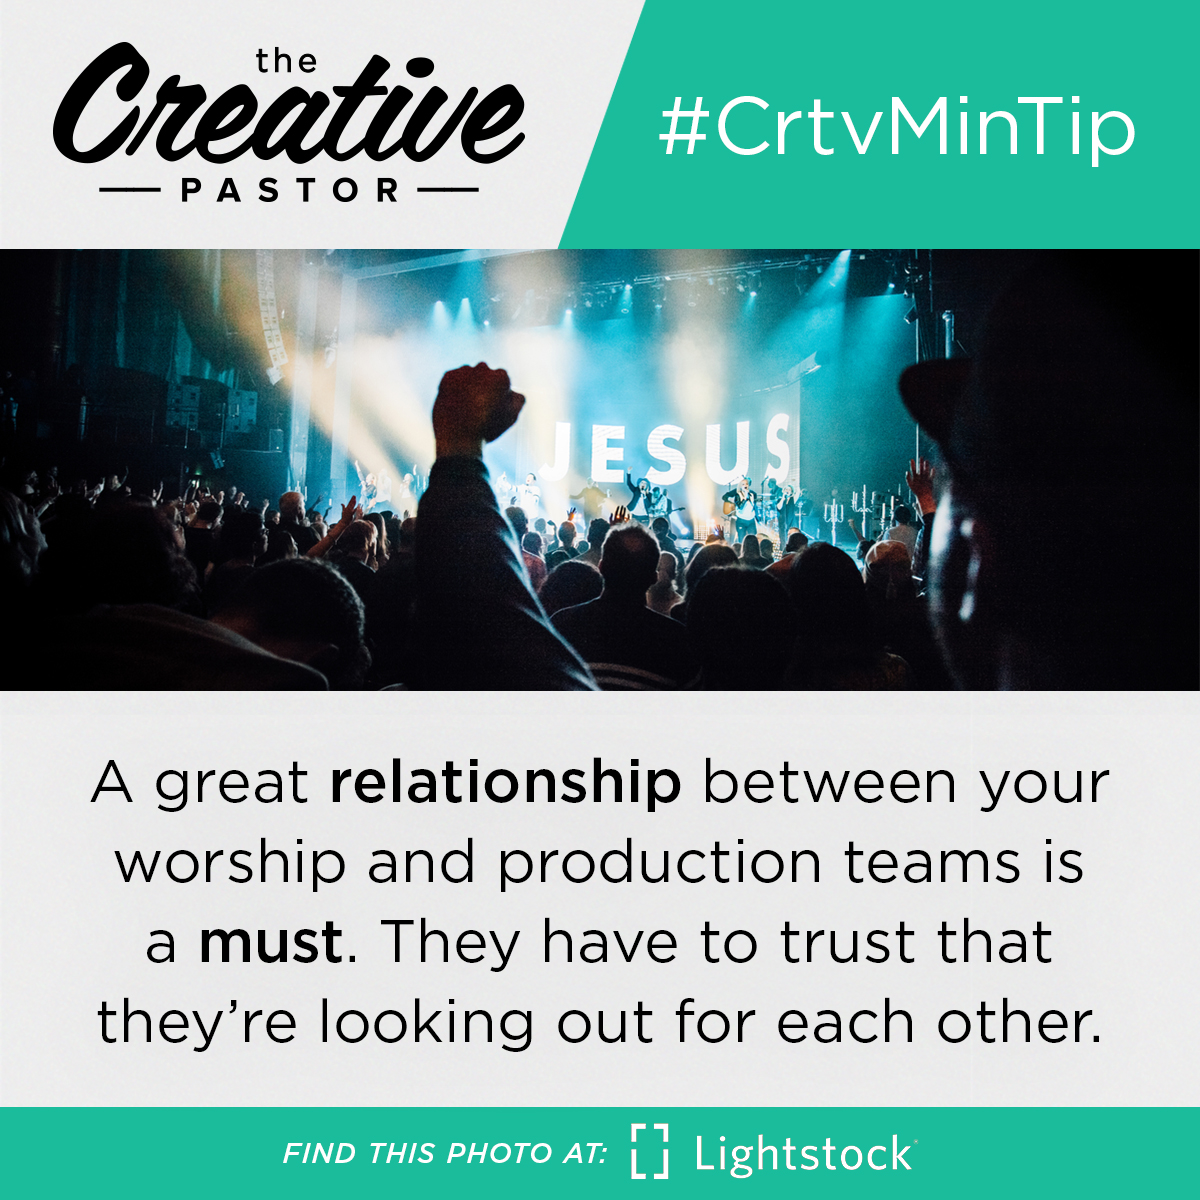 #CrtvMinTIp: A great relationship between your worship and production teams is a must. They have to trust that they're looking out for each other.